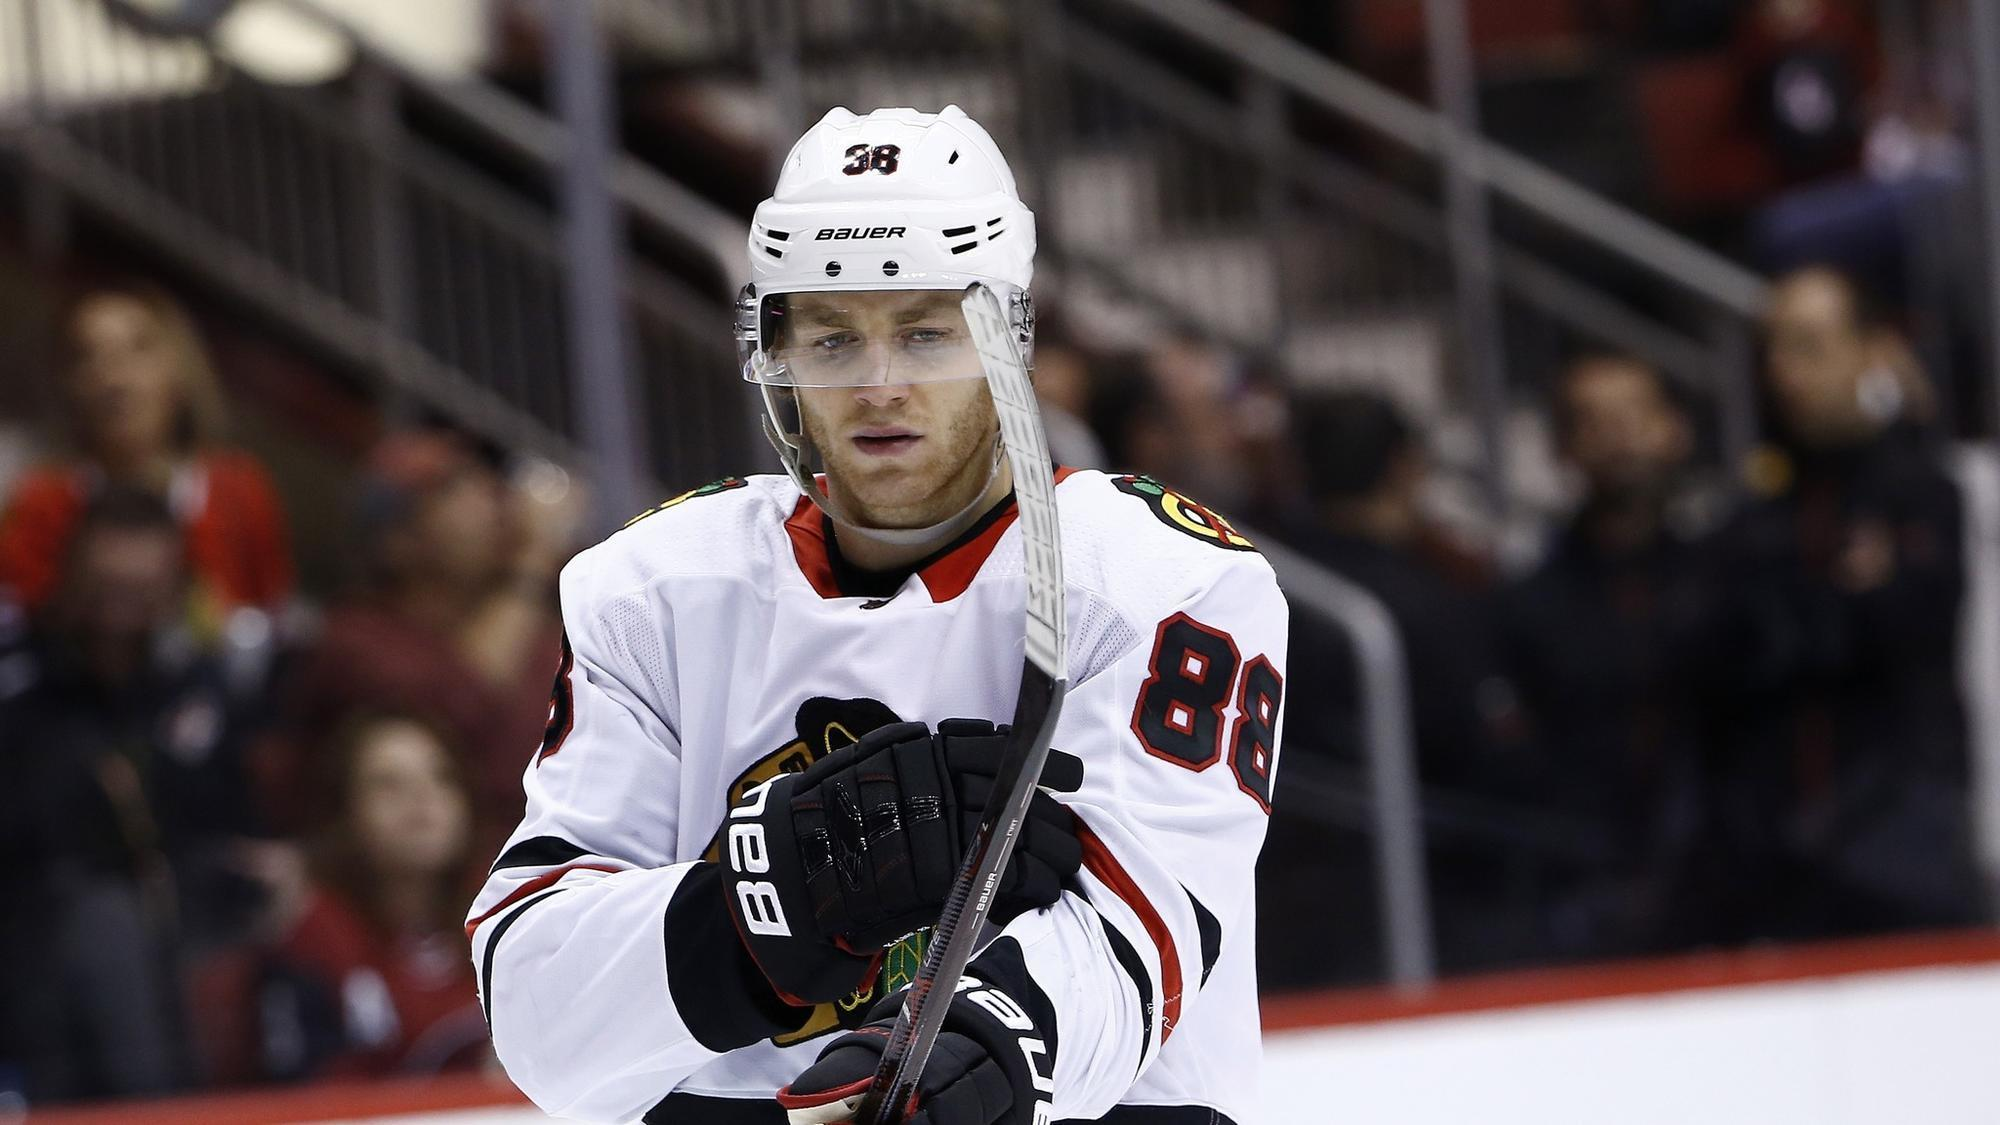 Patrick Kane leading by example on the ice for Blackhawks